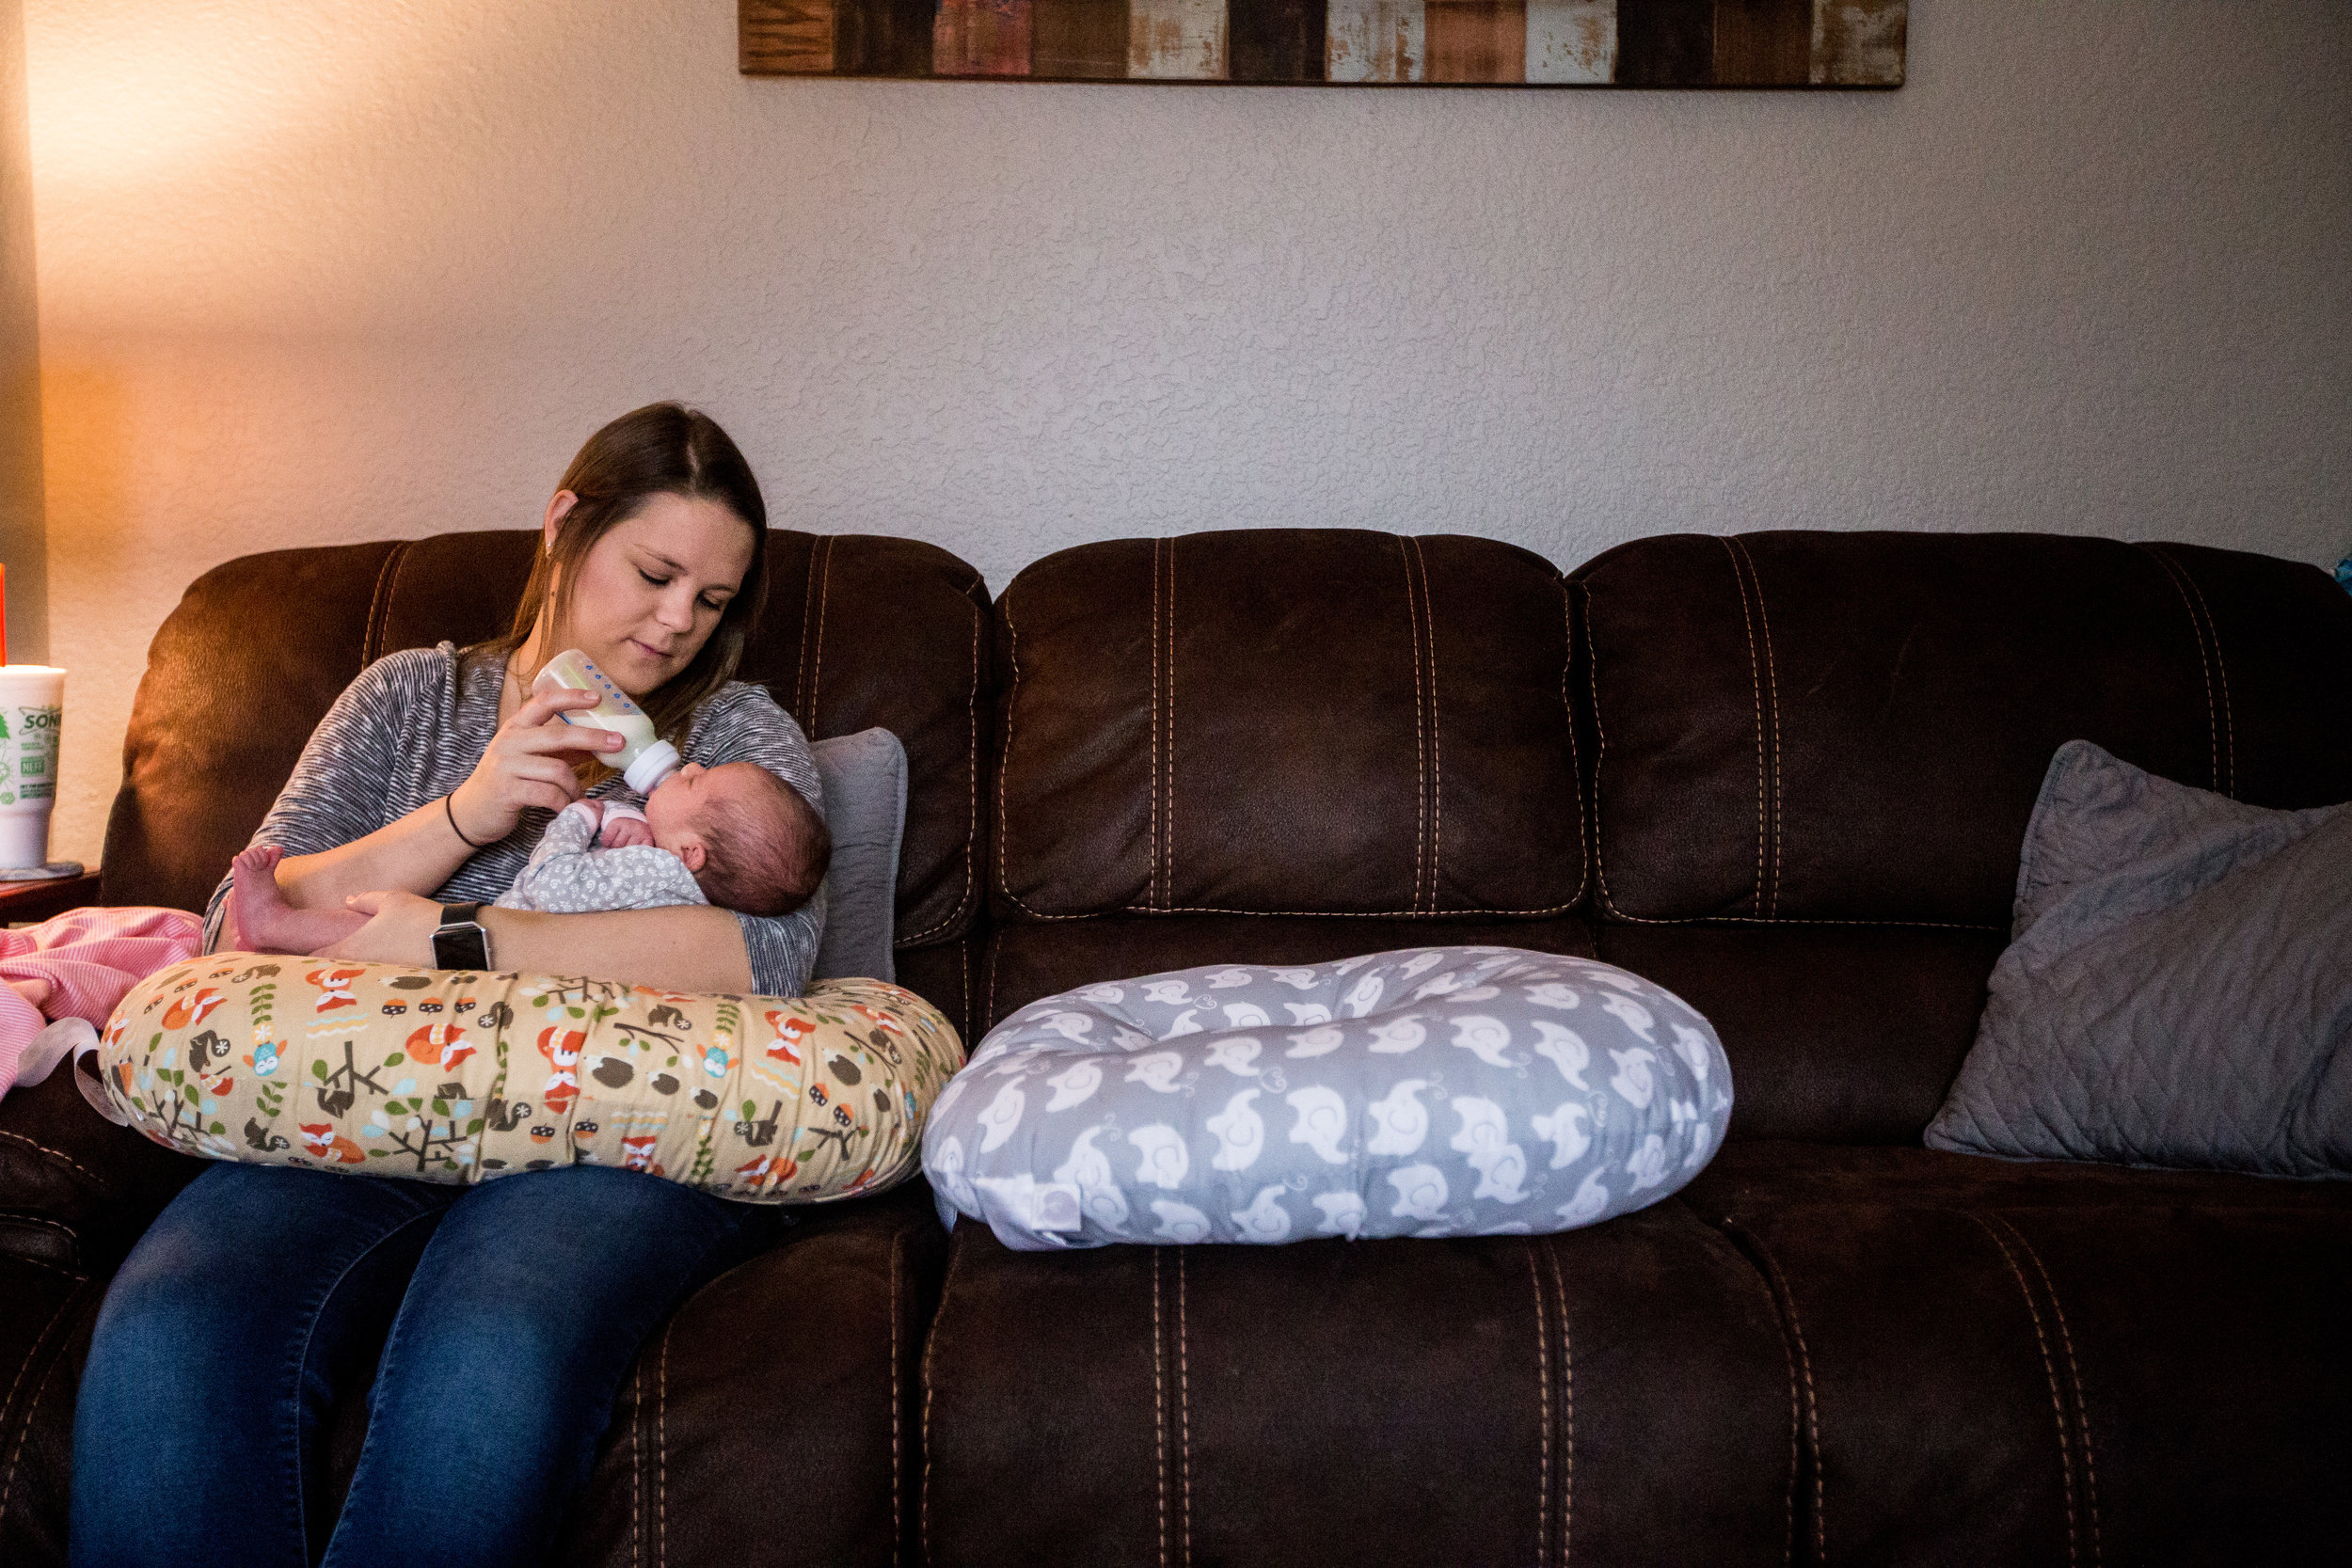 newborn photographer houston - ledwig-9719.jpg